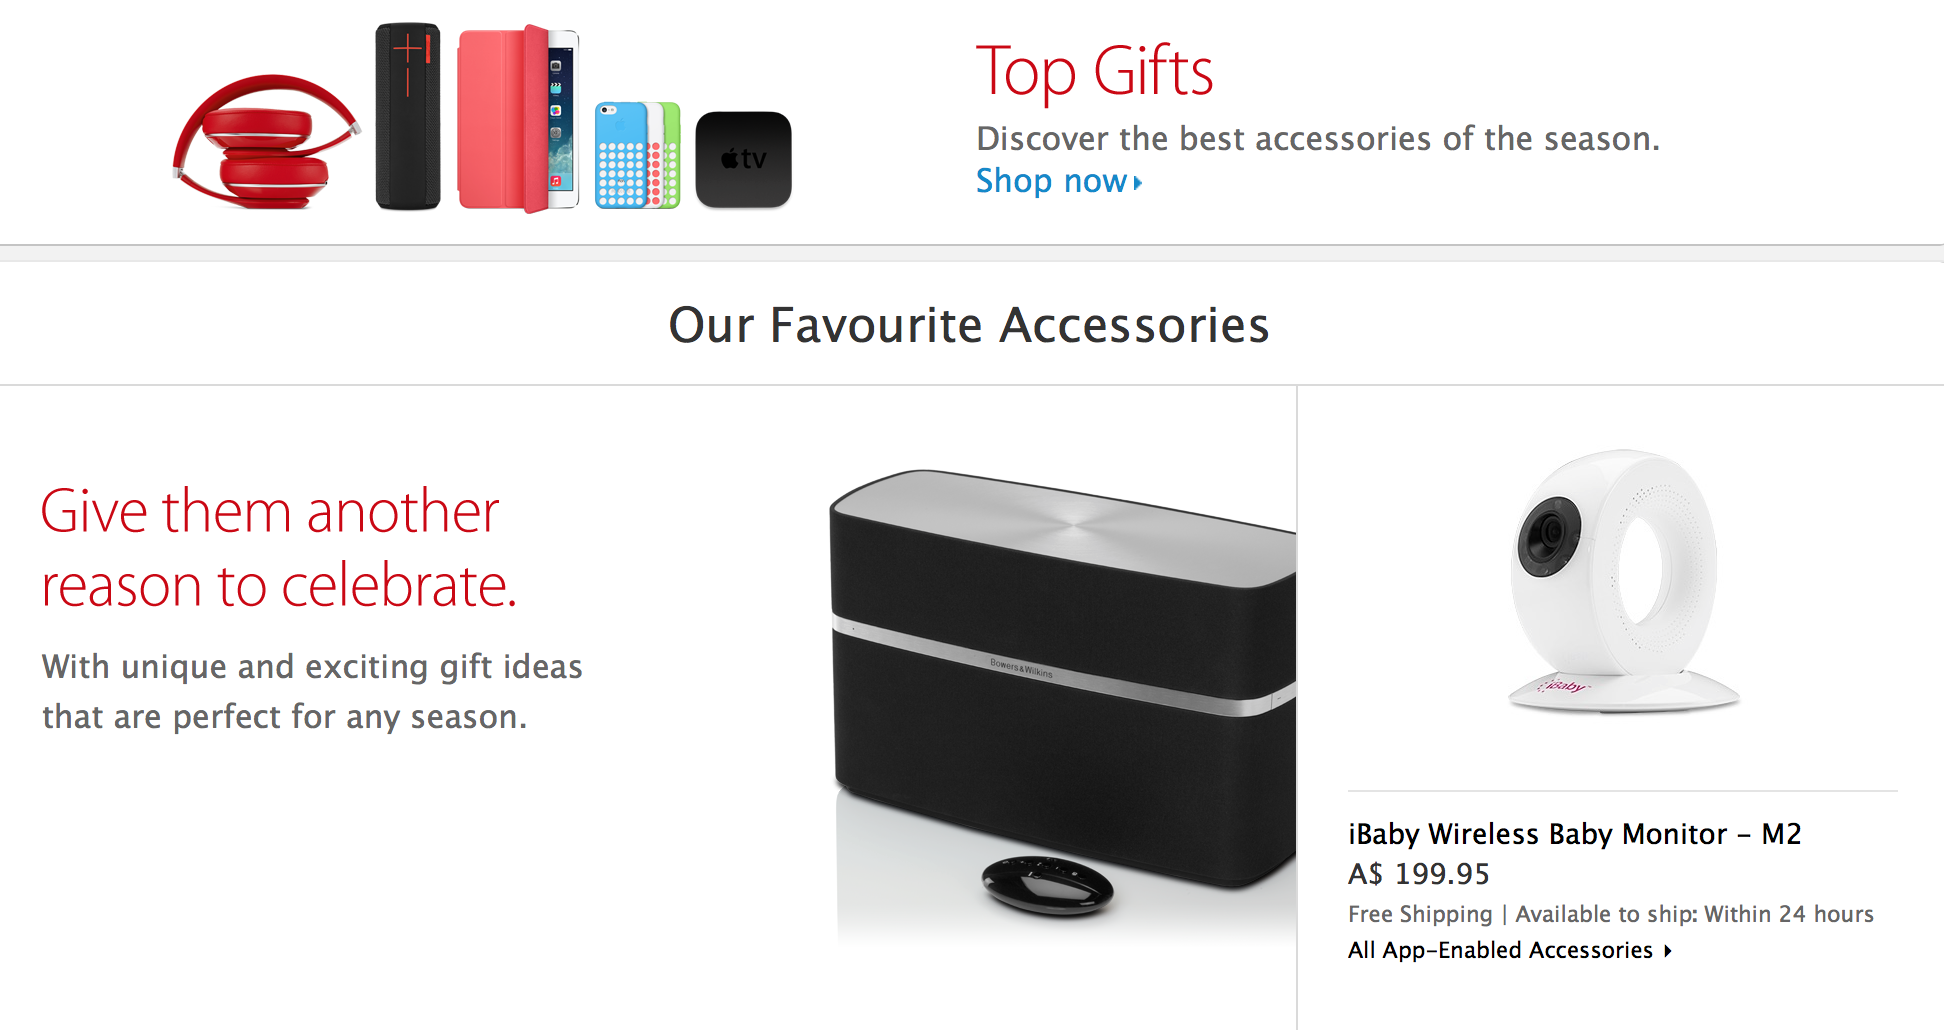 Apple Australia releases 2013 Christmas Top Gifts